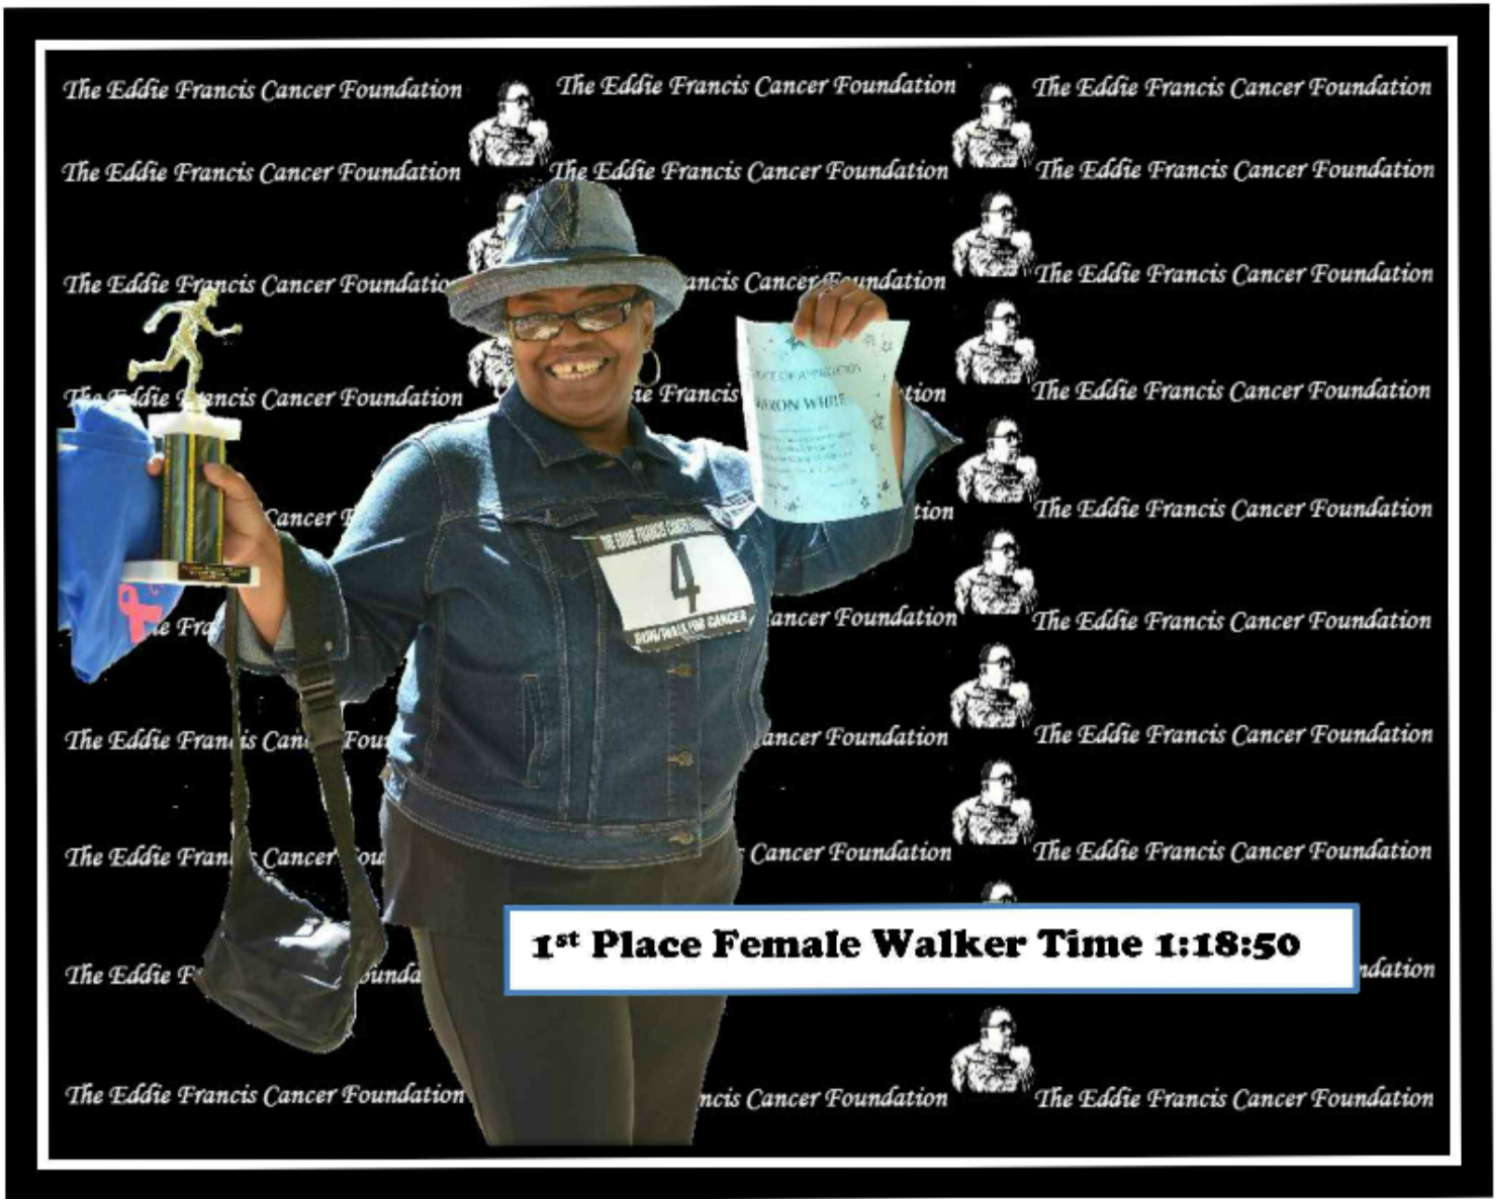 1st Place Female Walker